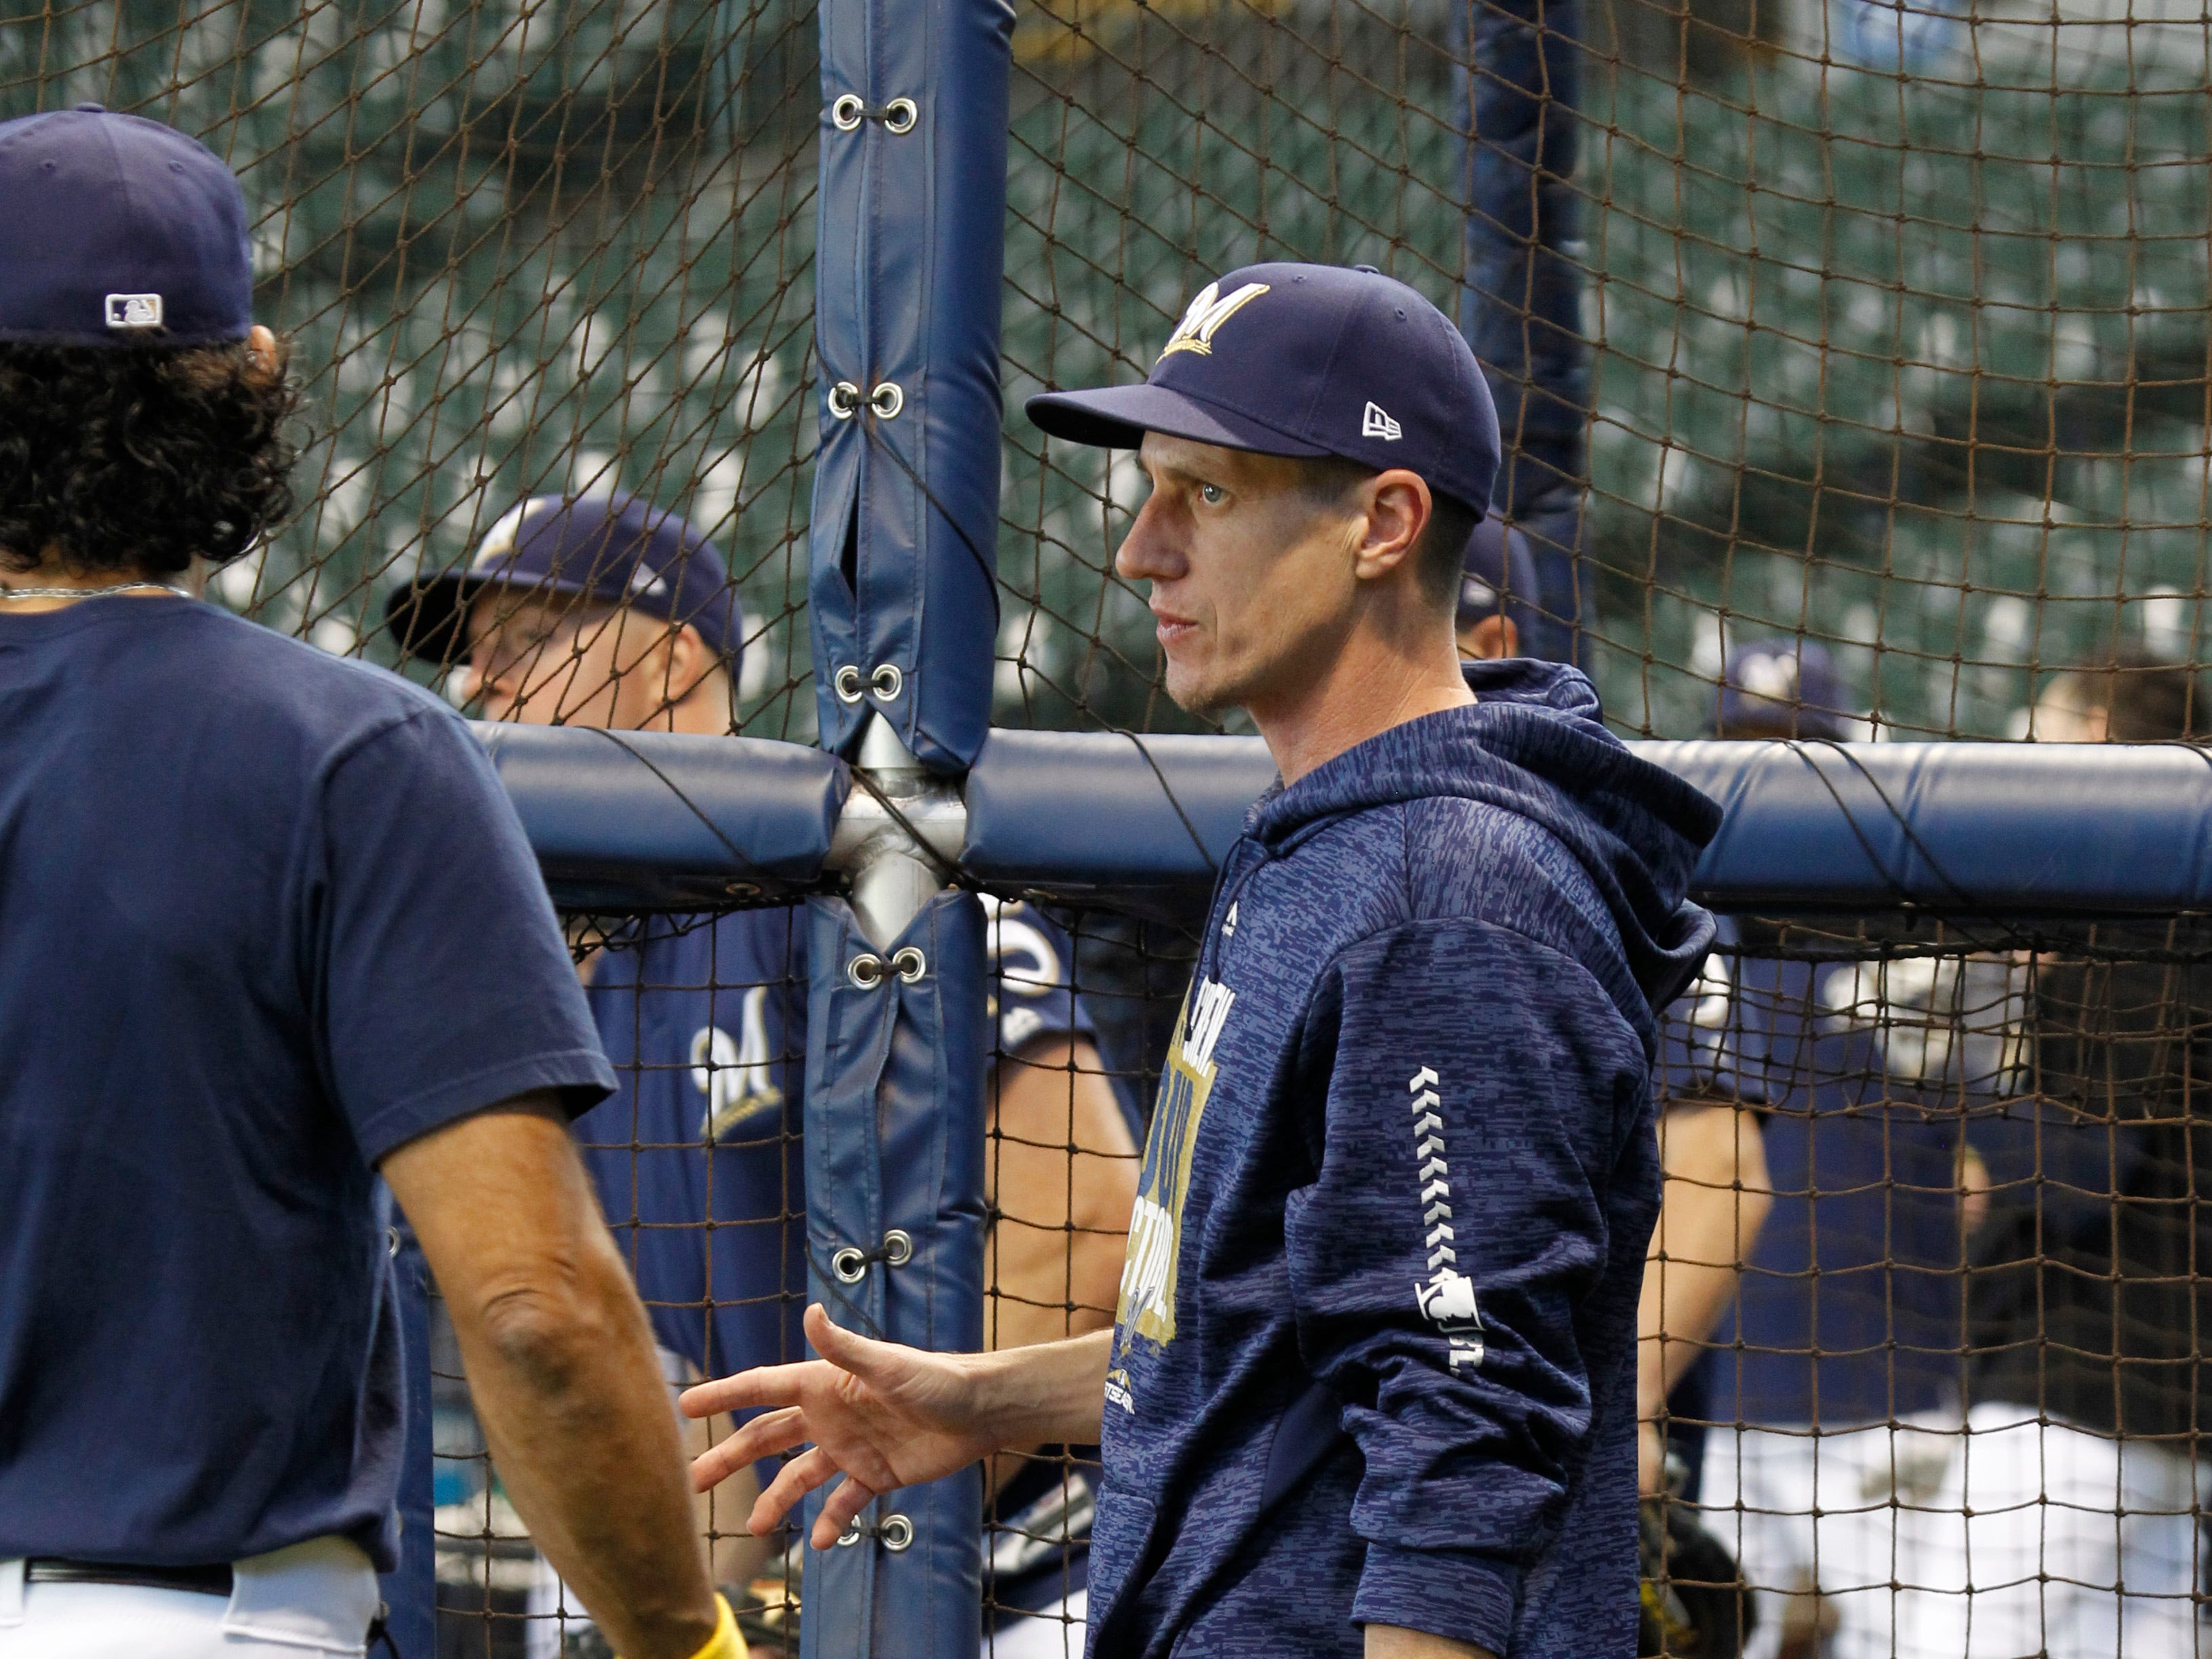 Brewers manager Craig Counsell talks with first base coach Carlos Subero during practice Wednesday at Miller Park.